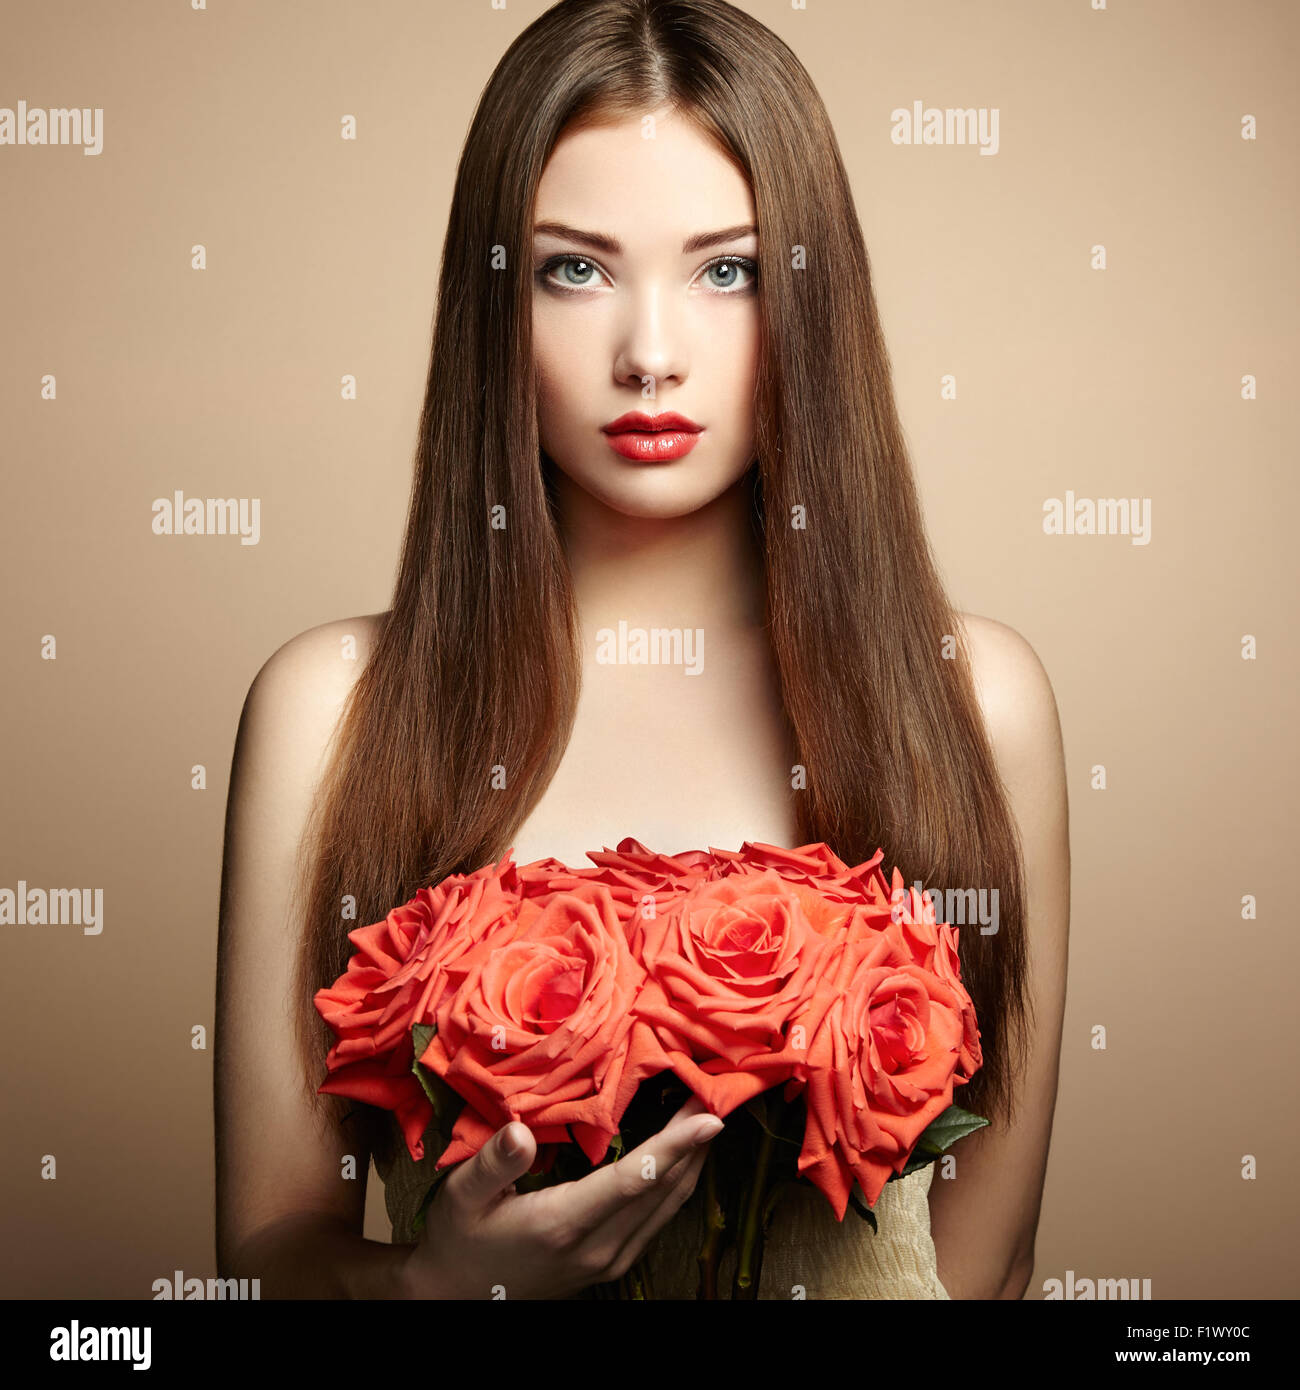 Portrait of beautiful dark haired woman with flowers fashion photo portrait of beautiful dark haired woman with flowers fashion photo izmirmasajfo Image collections